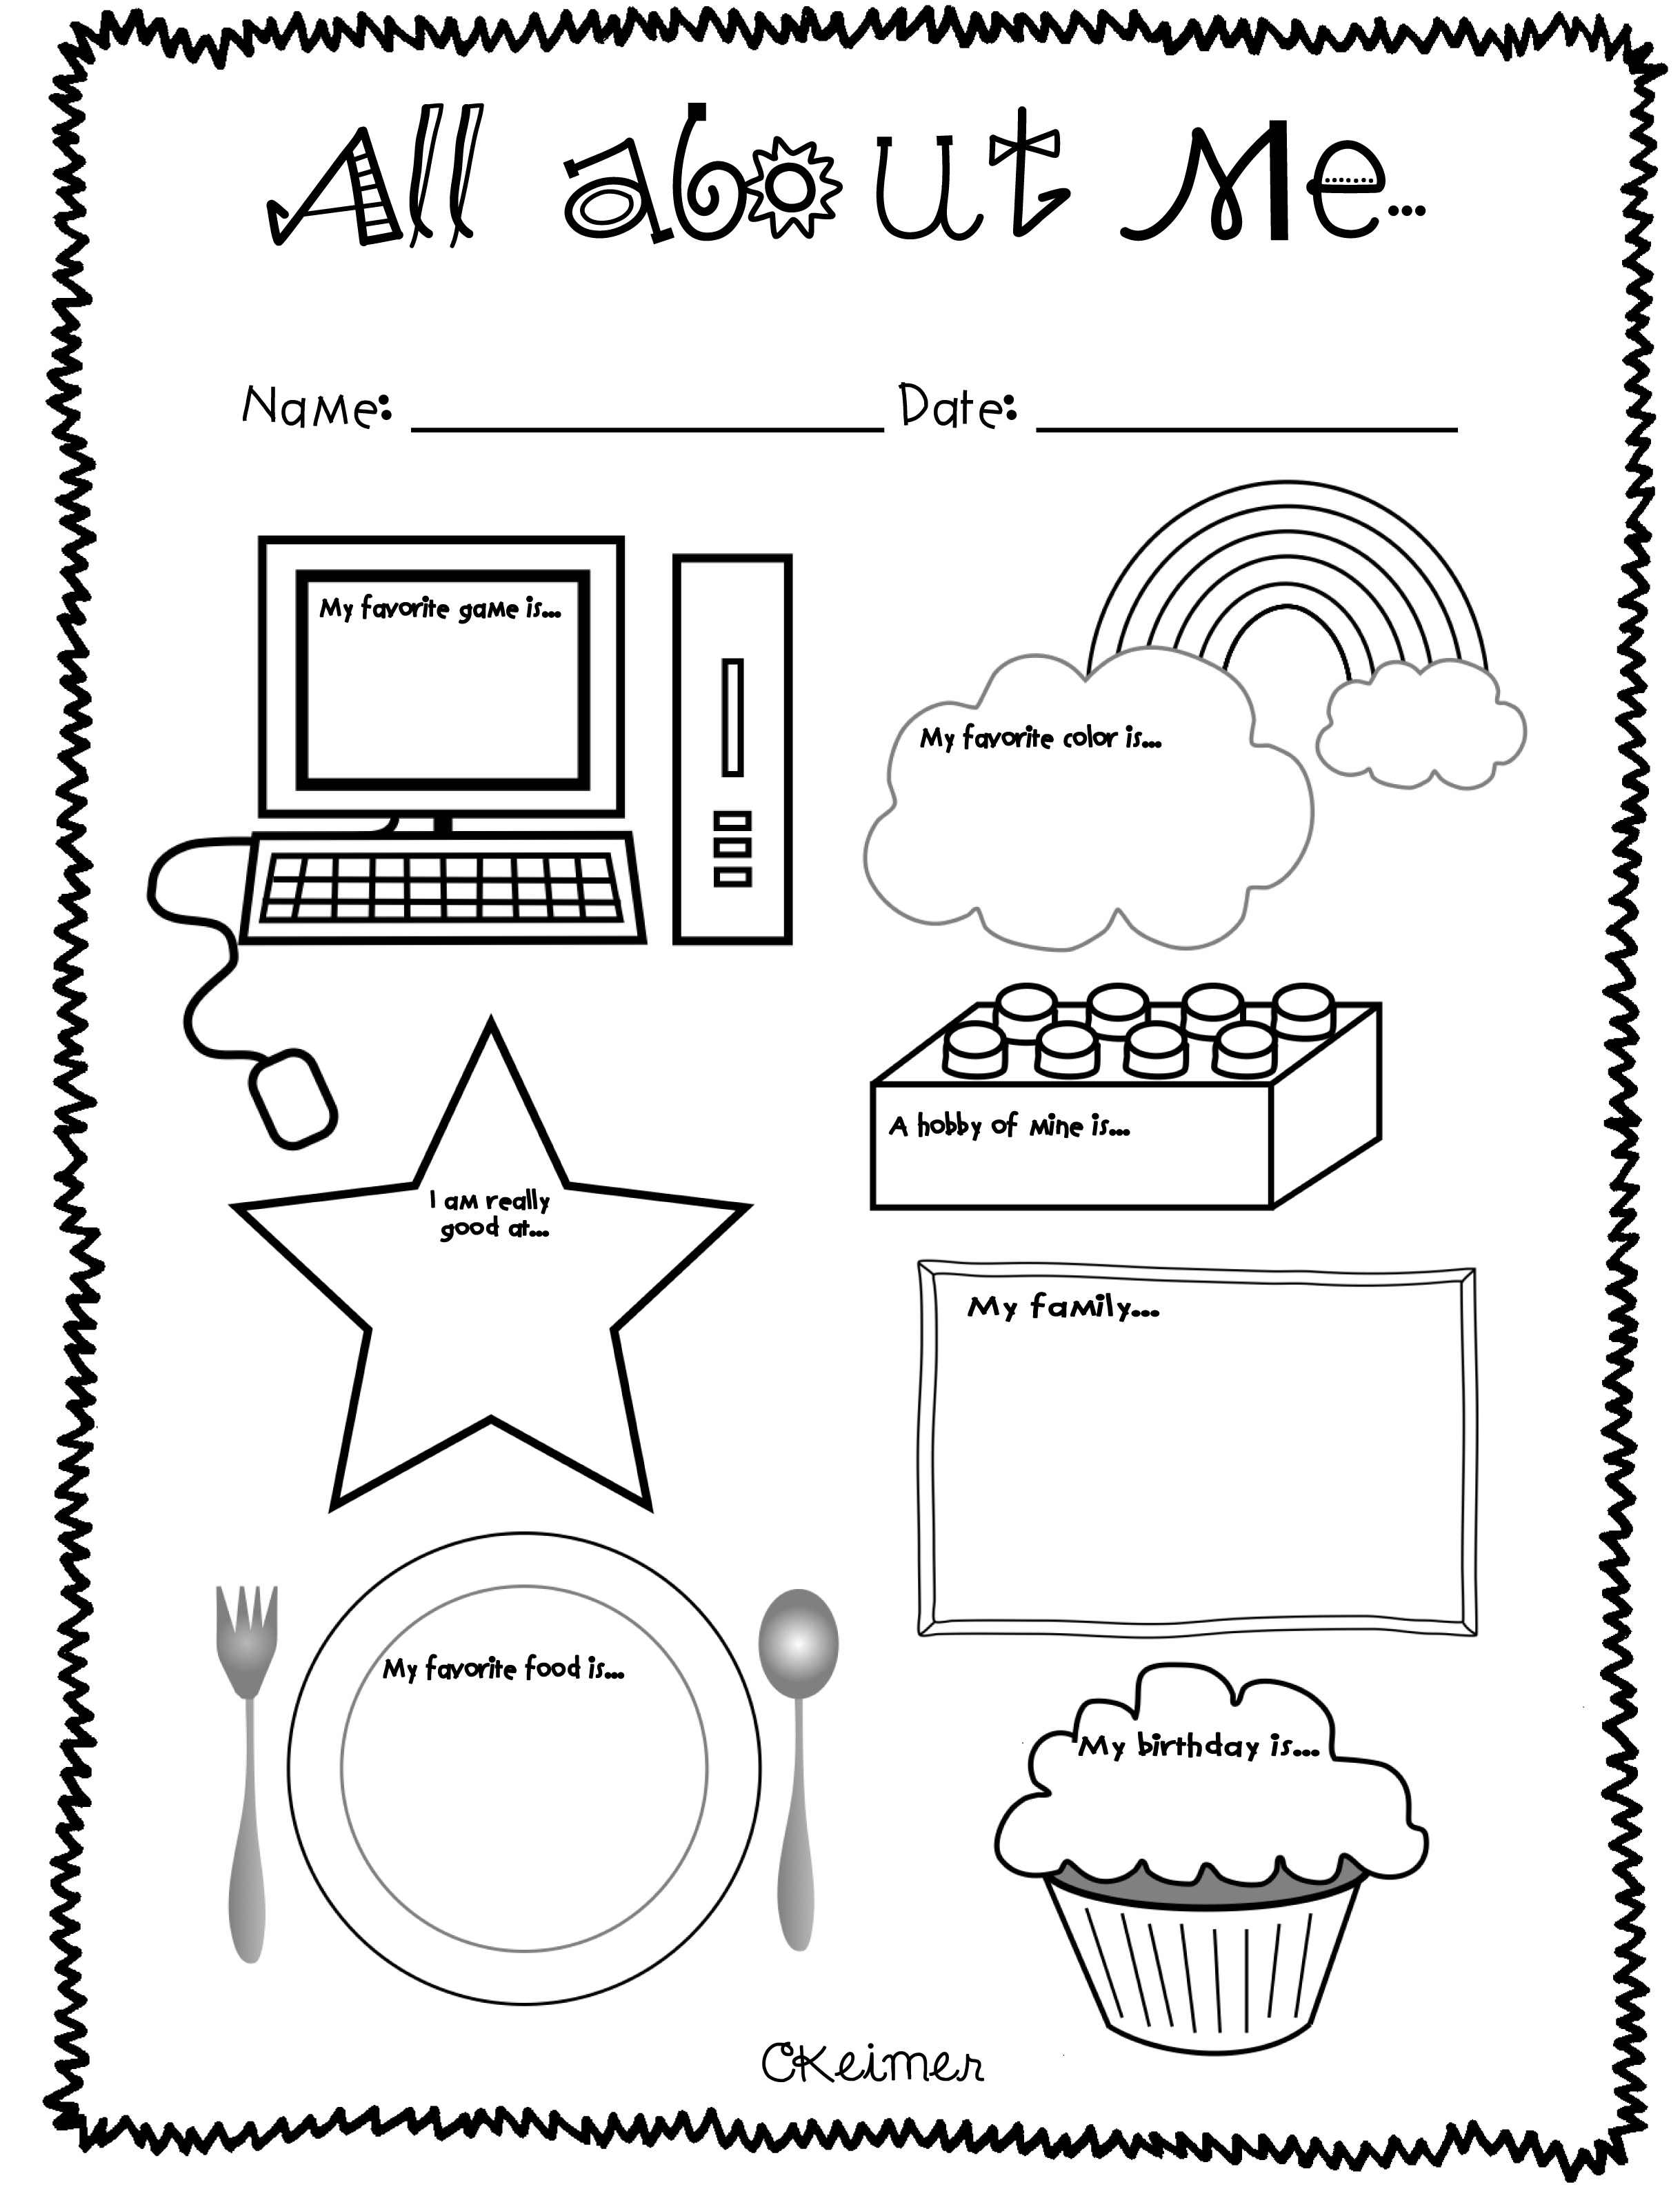 All About Me Activities: A Multiple Intelligences